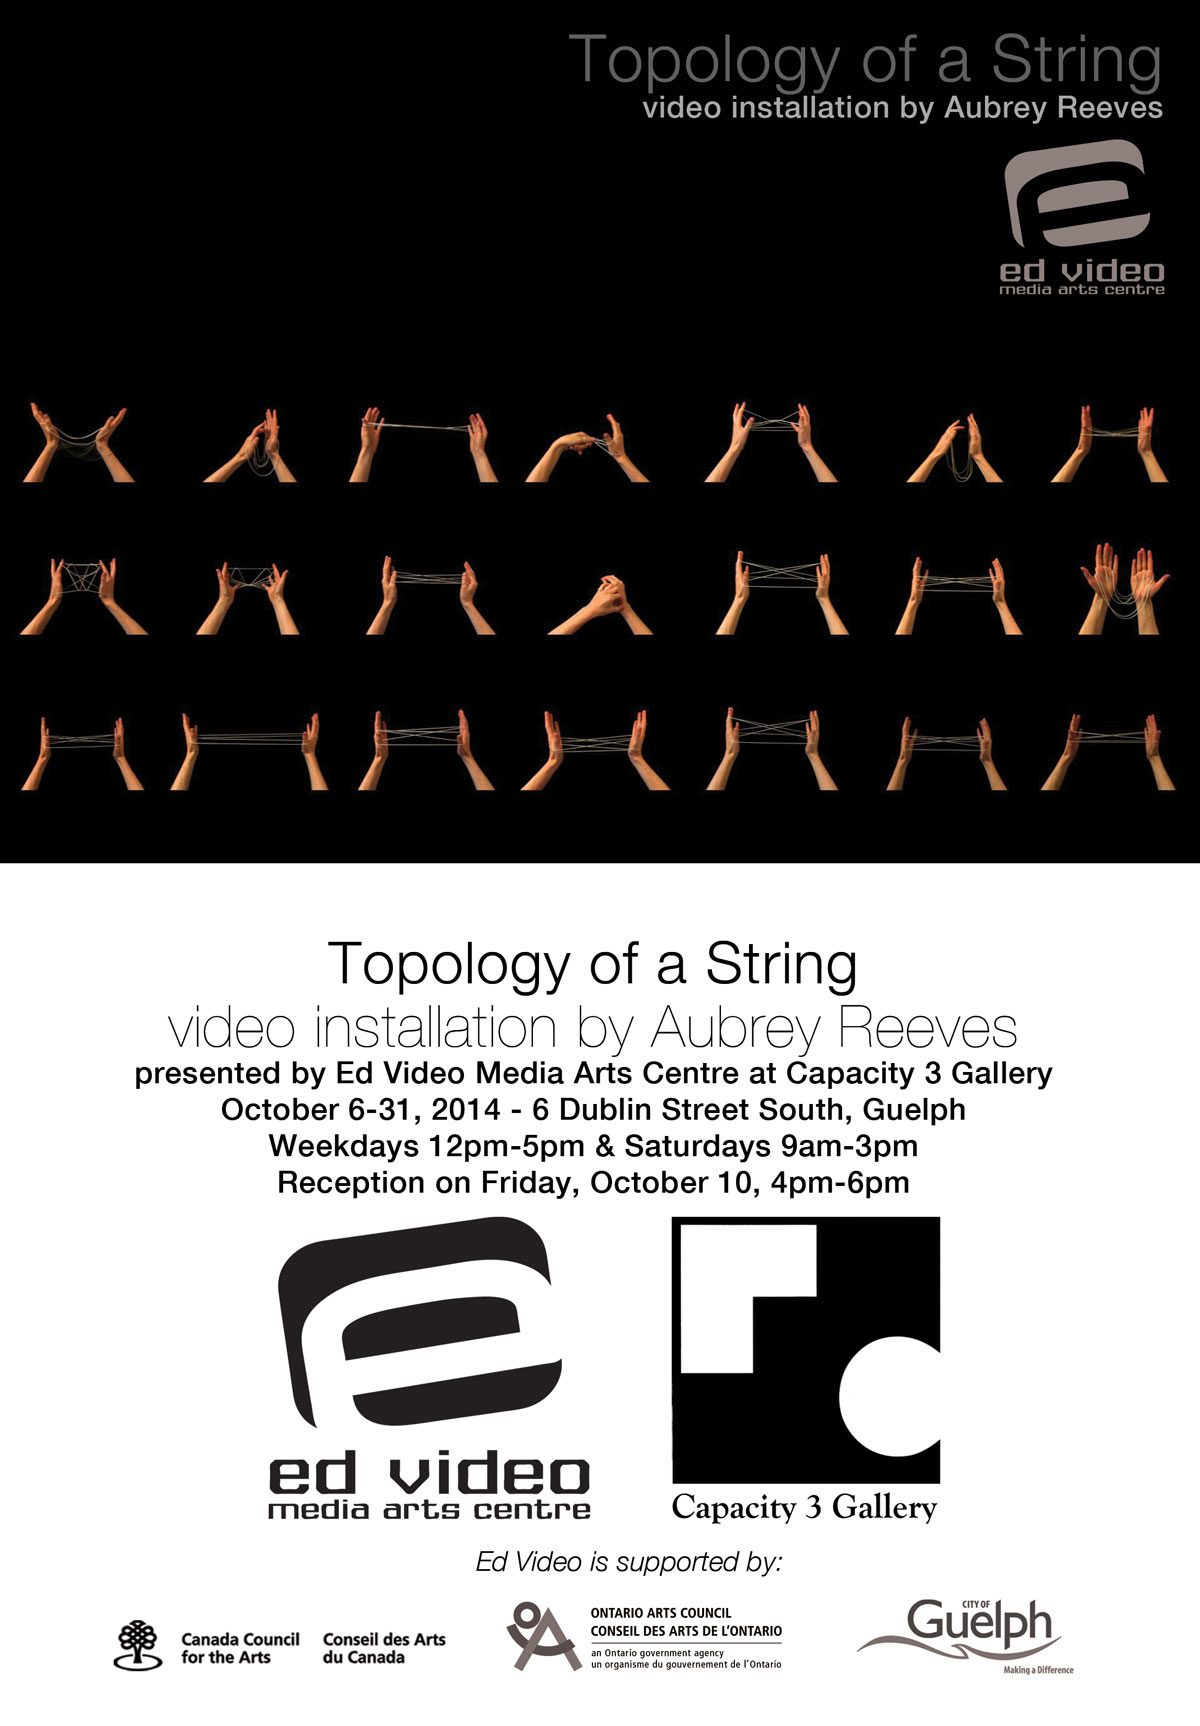 Topology of a String by Aubrey Reeves